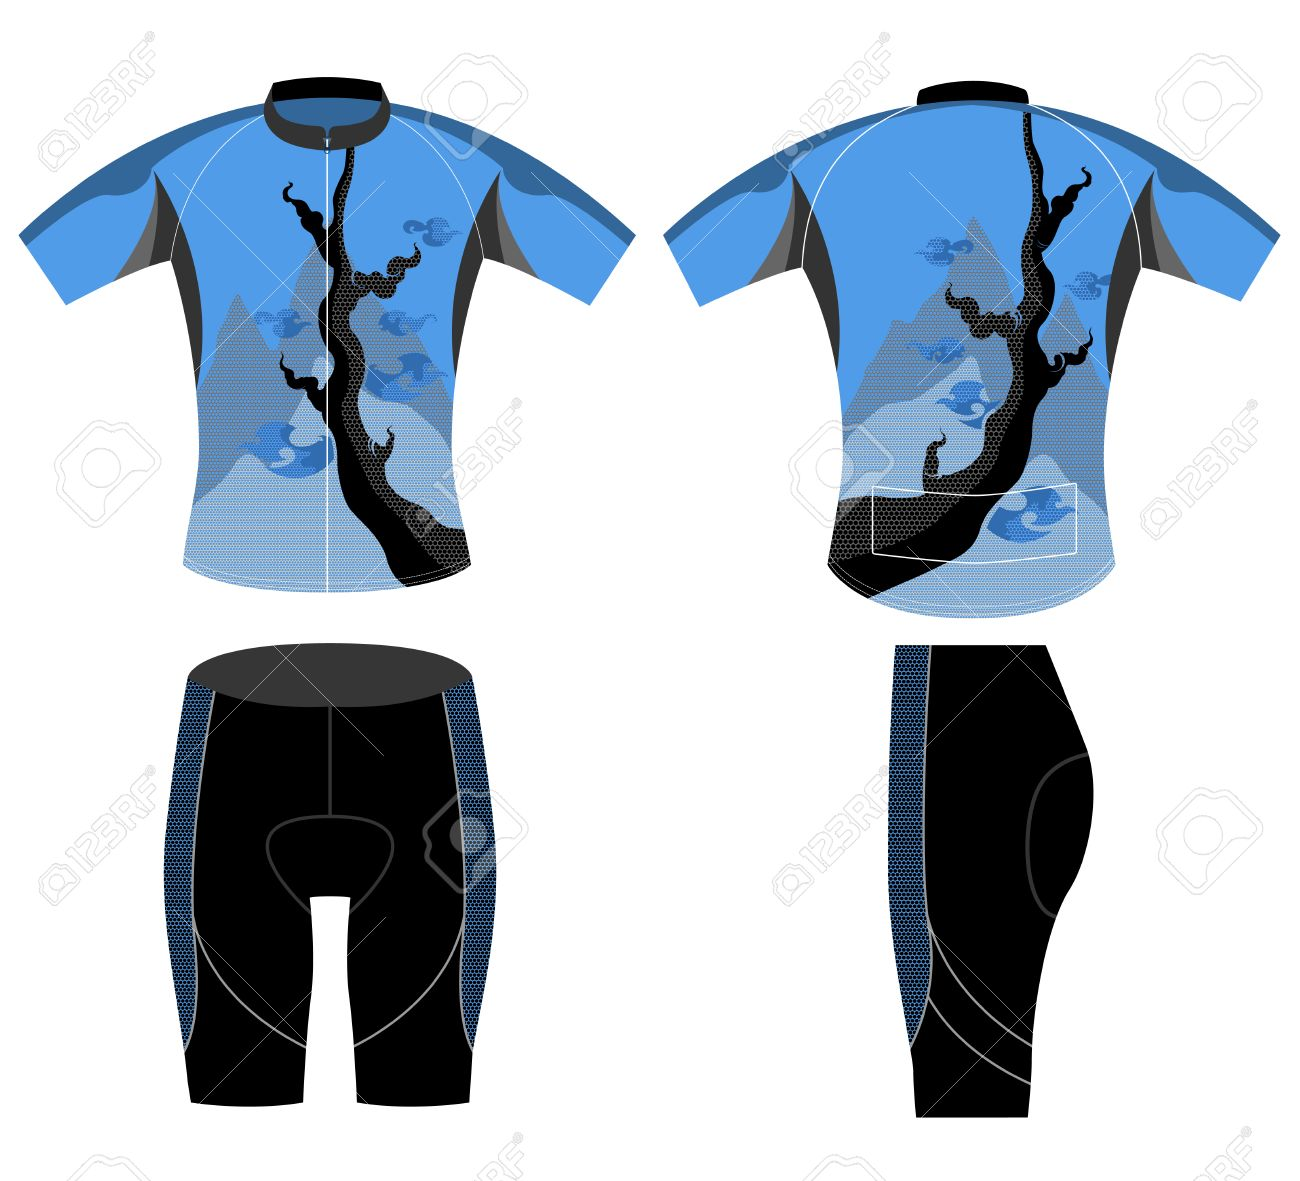 Cycling Vest Sports T Shirt Design Style Vector On A White